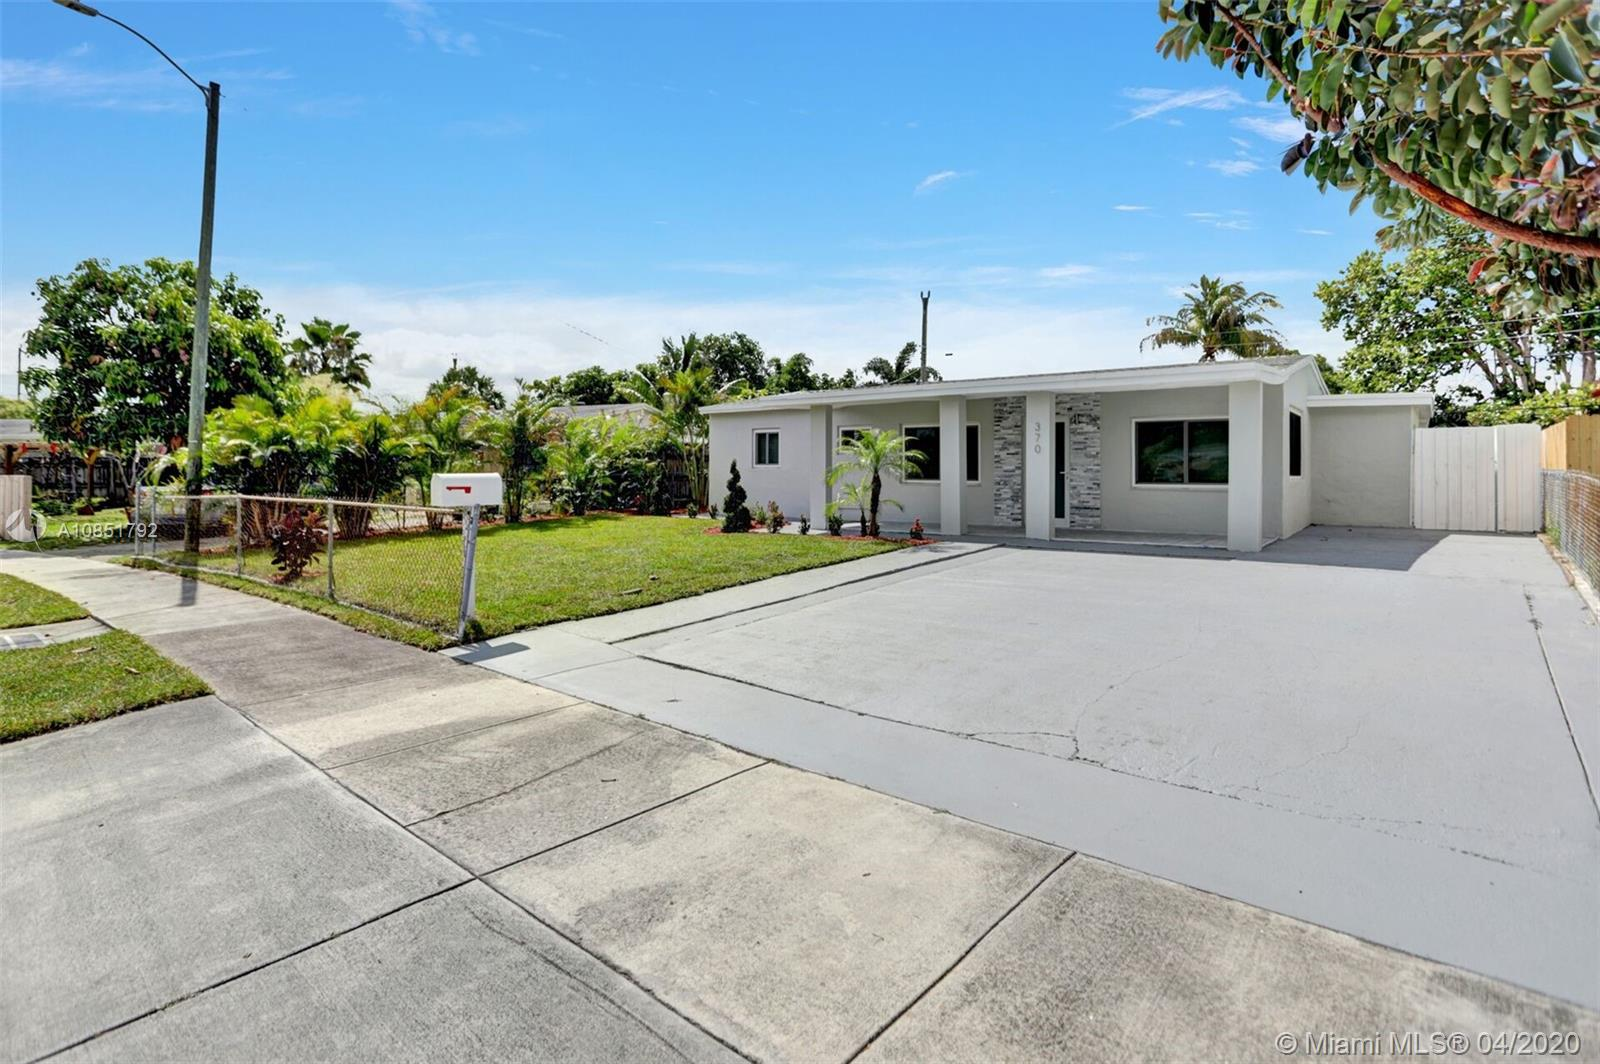 BEAUTIFULLY FULLY REMODELED 4/2 HOME WITH LARGE POOL IN THE HEART OF OAKLAND PARK! PERFECT TURN-KEY STARTER HOME OR VACATION RENTAL OPPORTUNITY! HOME FEATURES ALL HURRICANE IMPACT WINDOWS AND DOORS, BRAND NEW 2020 SHINGLE ROOF, 2013 A/C UNIT, NEW BATHROOMS, BRAND NEW WHIRLPOOL WASHER AND DRYER , NEW SPRINKLERS SYSTEM WITH NEW GRASS. NEW CUSTOM KITCHEN WITH HIGH END EUROPEAN CABINETS, QUARTZ COUNTERTOP AND BRAND NEW STAINLESS STEEL APPLIANCES, RECESSED LIGHTING THROUGHOUT, BACKYARD WITH LARGE POOL NICE FOR ENTERTAIMENT, SPACIOUS DRIVEWAY, FRESHLY PAINTED INSIDE/OUT... MINUTES FROM SCHOOLS, BEACH, SHOPPING PLAZAS ETC.. HURRY THIS WONT LAST LONG!!